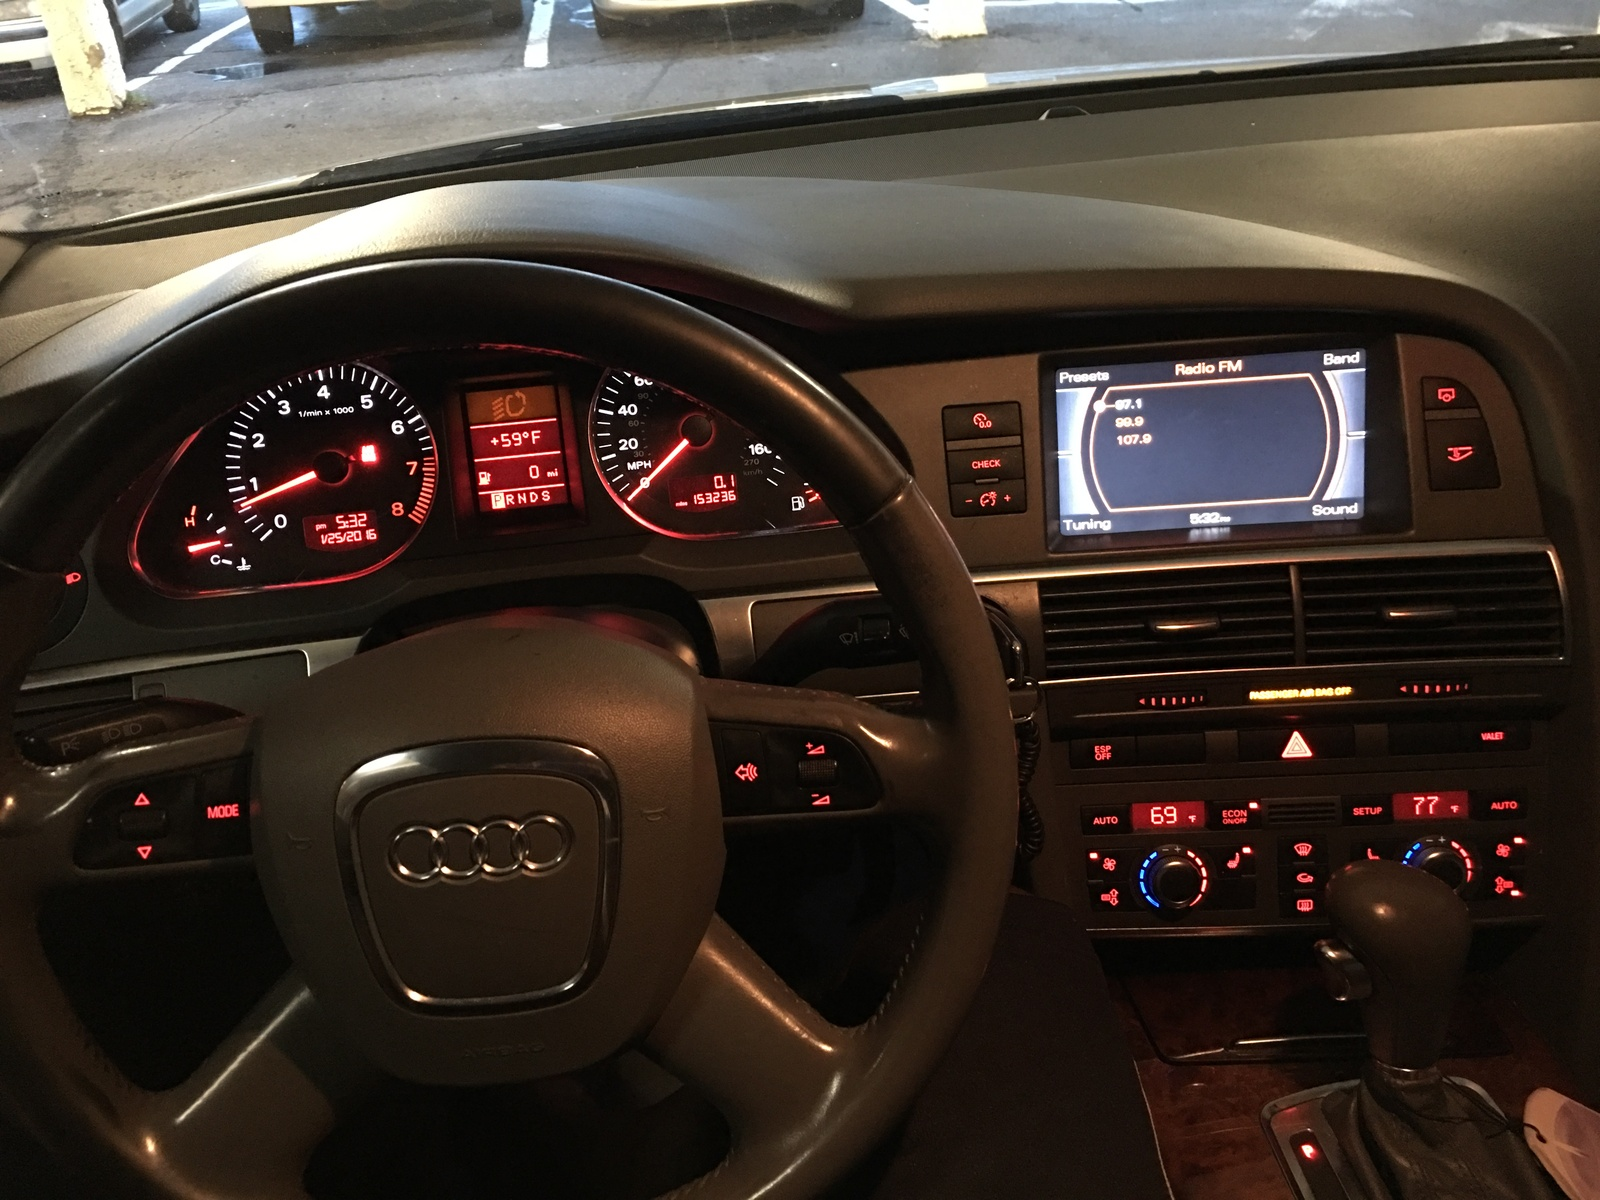 Audi A6 Questions - Audi A6 steering wheel is hard to turn when at full  stop. - CarGurus